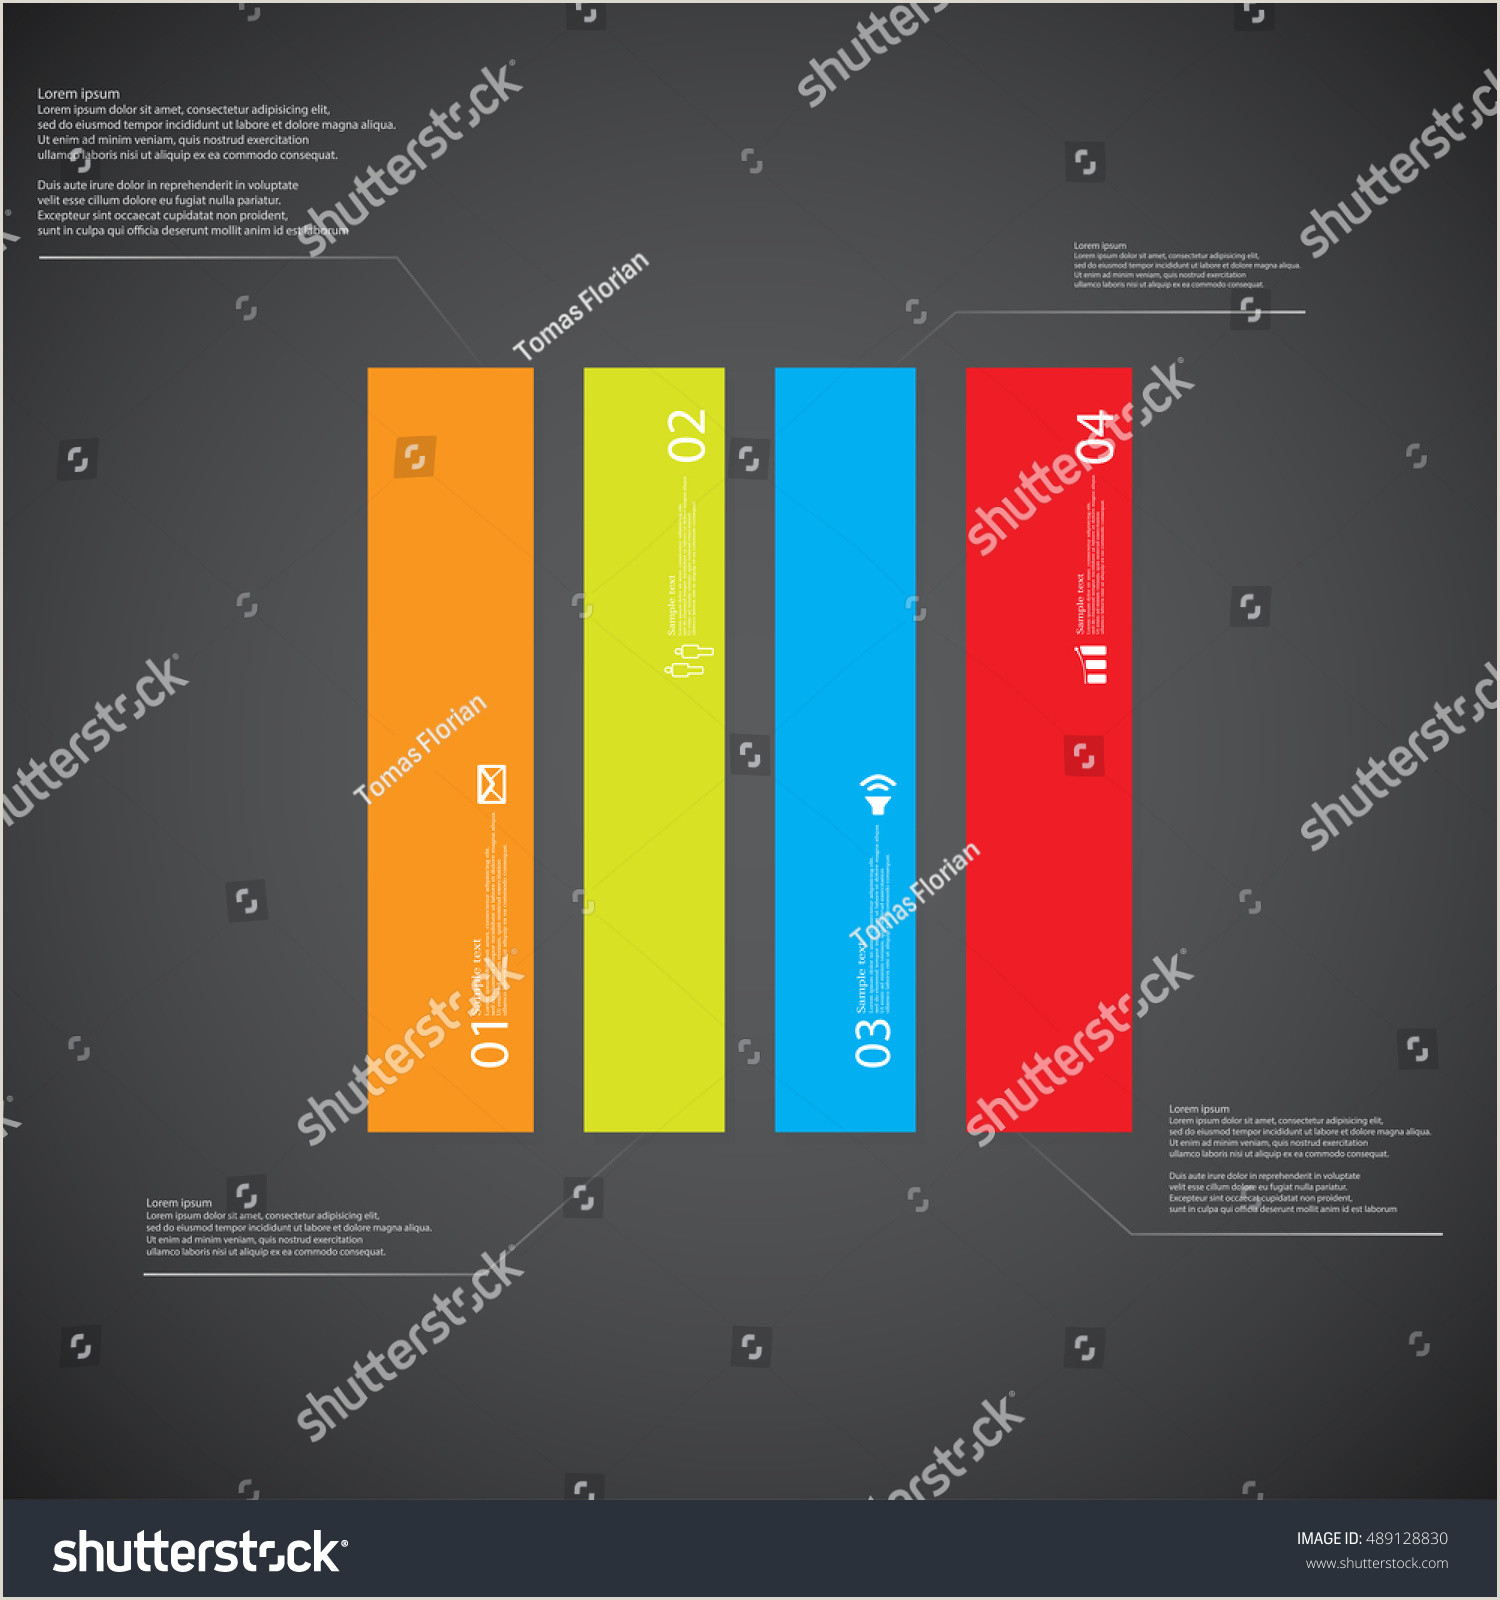 Four Square Writing Graphic organizer Illustration Infographic Template Shape Rectangle Square